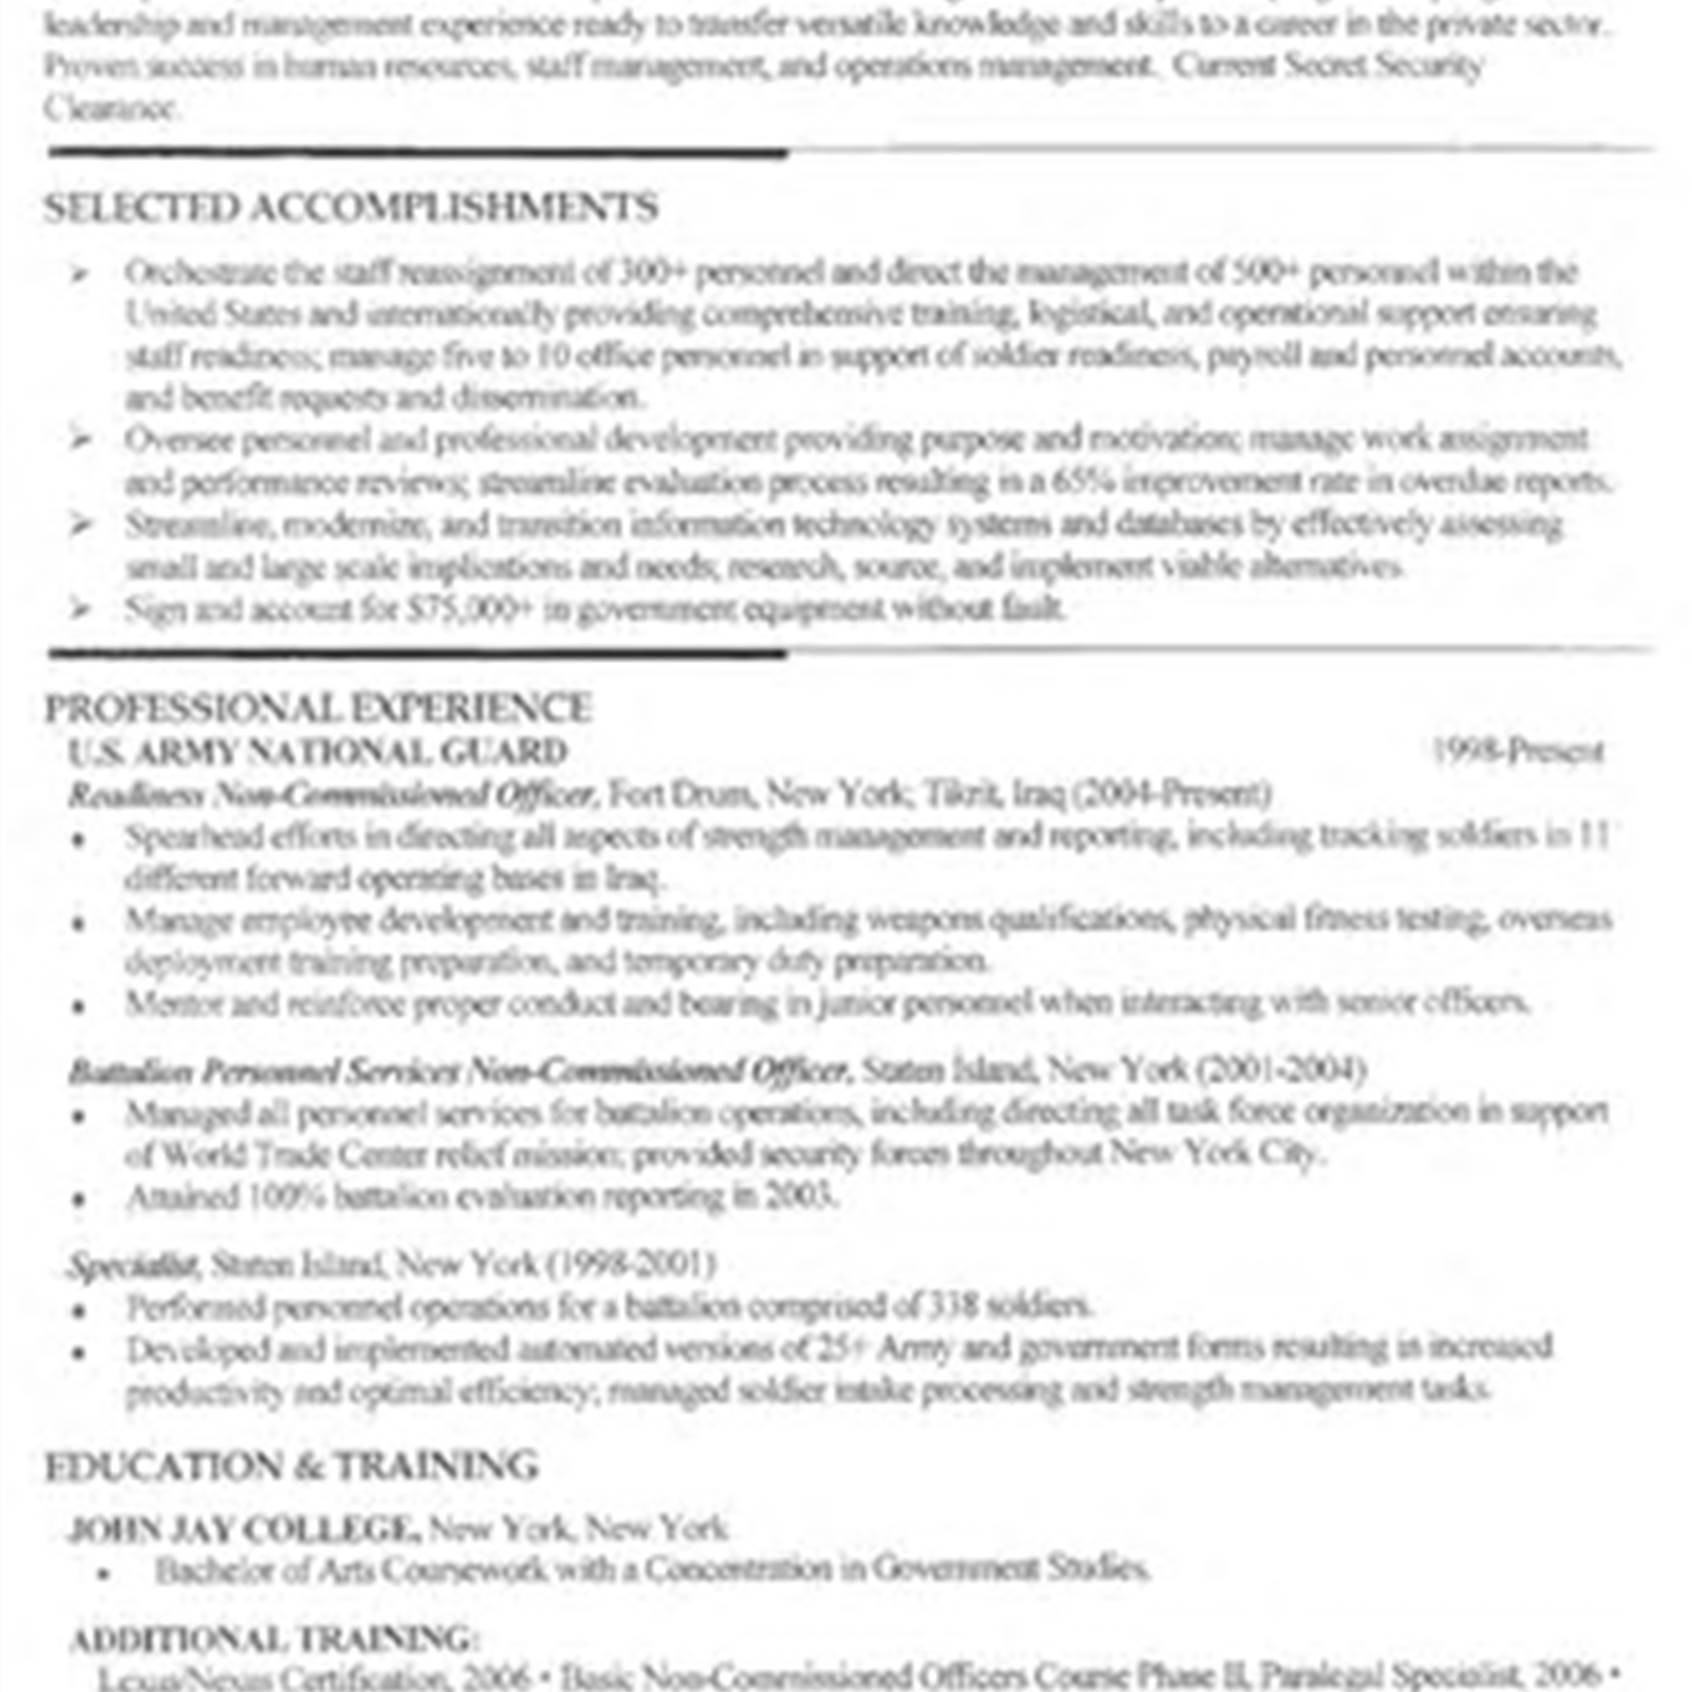 Best Resume Writing Services Reviewed [ UPDATE] - Vault50